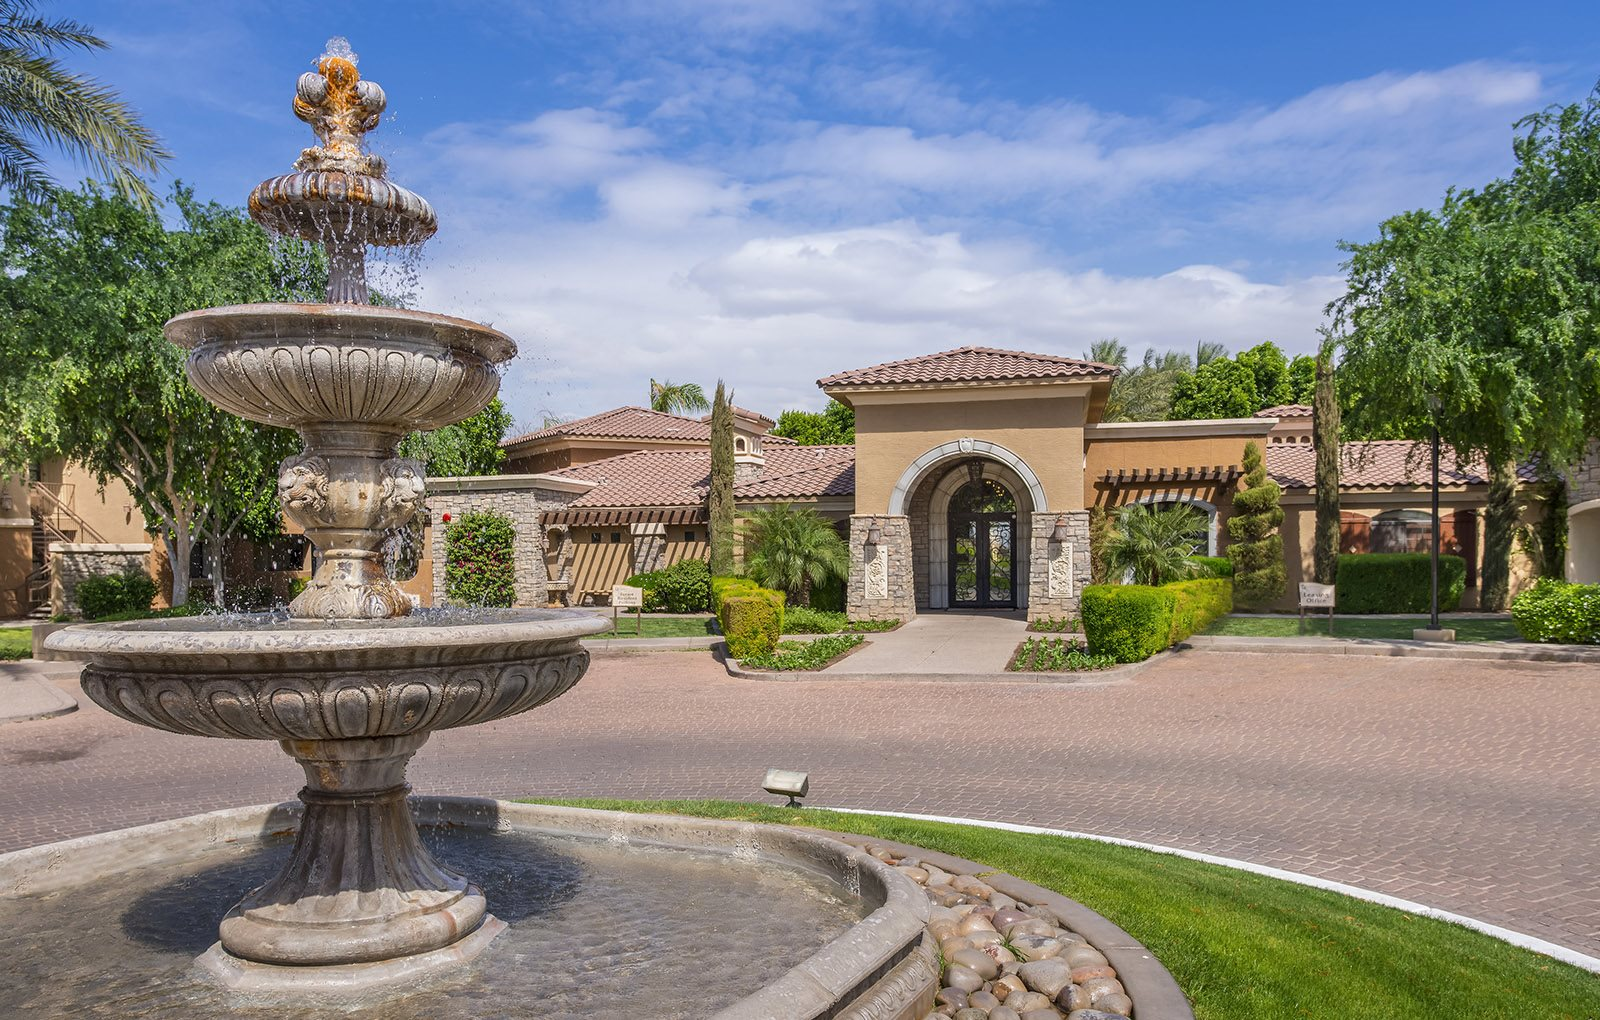 Versante Apartment Homes Entrance and Fountain